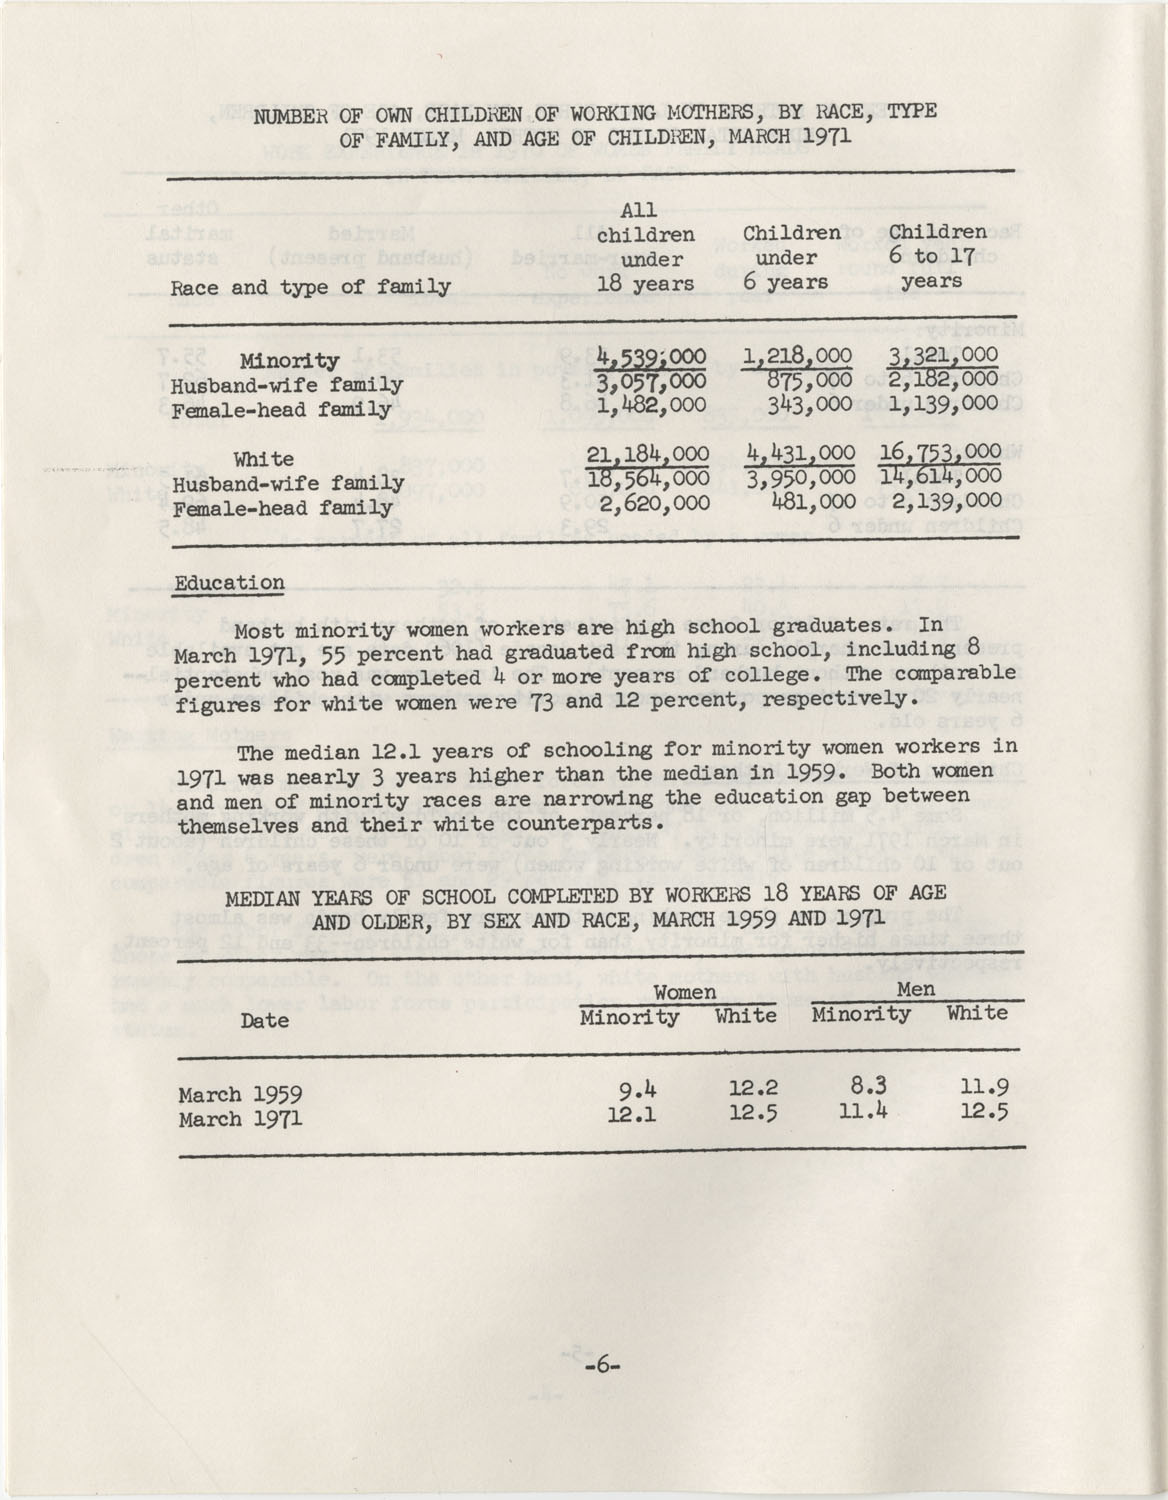 Facts on Women Workers of Minority Races, U.S. Department of Labor, June 1972, Page 6